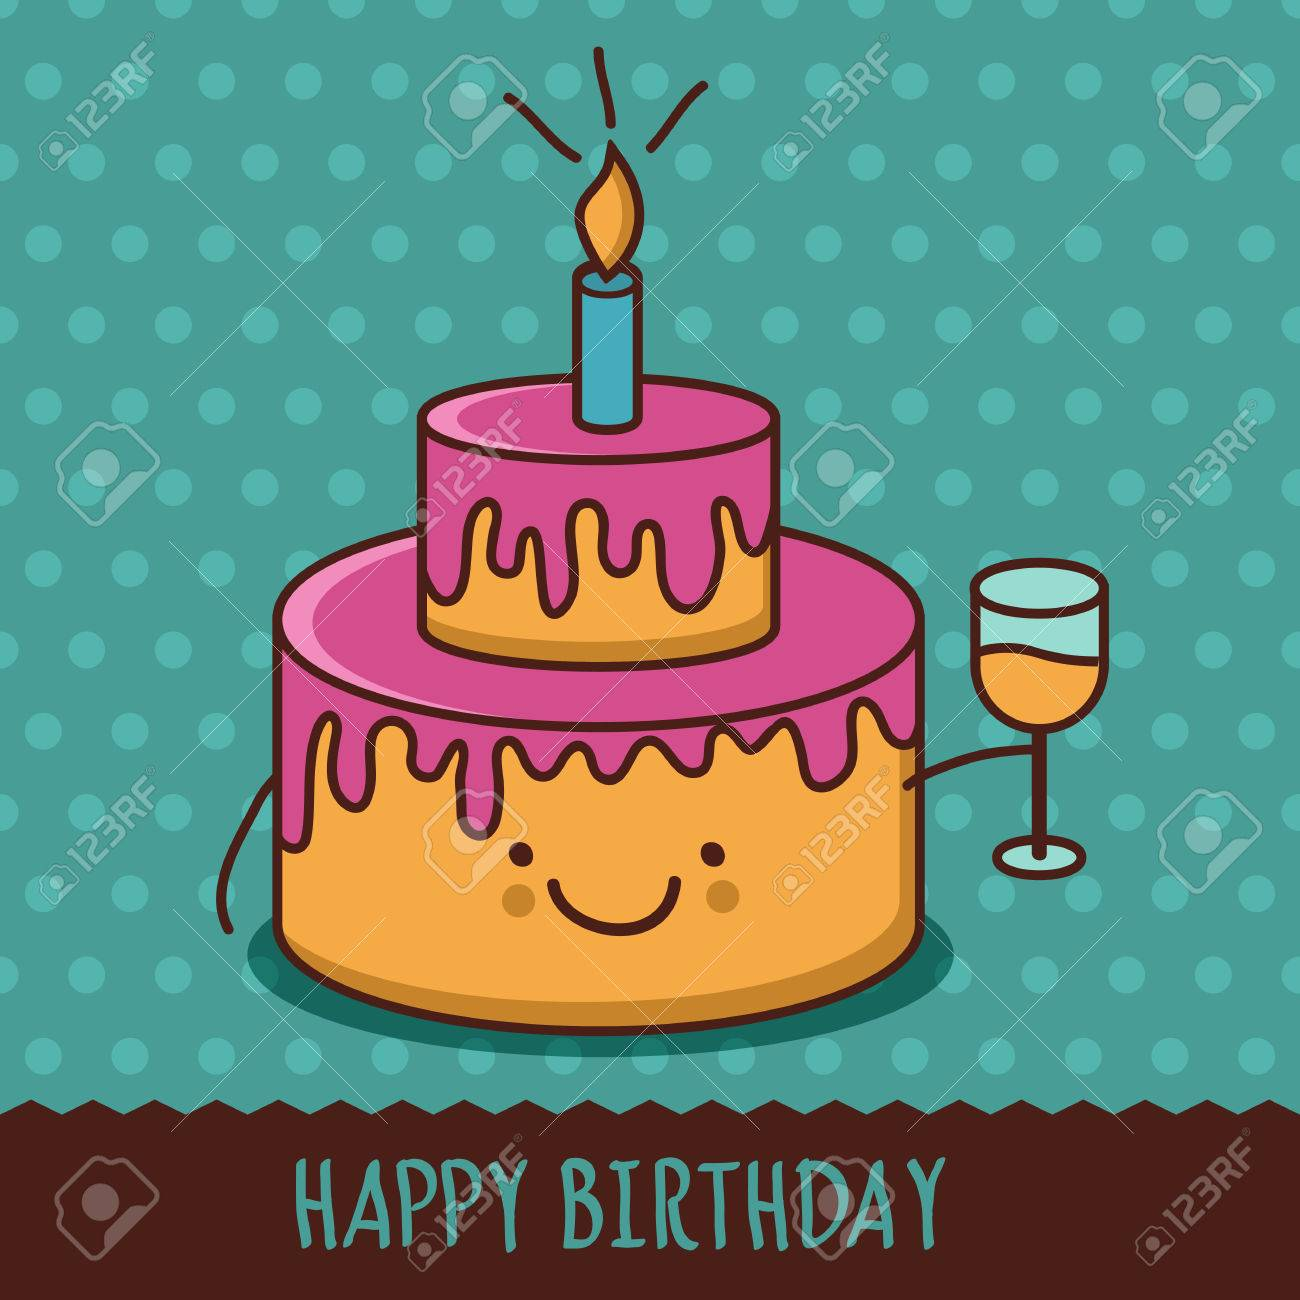 Cute Cartoon Smiling Cake With Glass Of Champagne Vector Illustration Royalty Free Cliparts Vectors And Stock Illustration Image 35173657